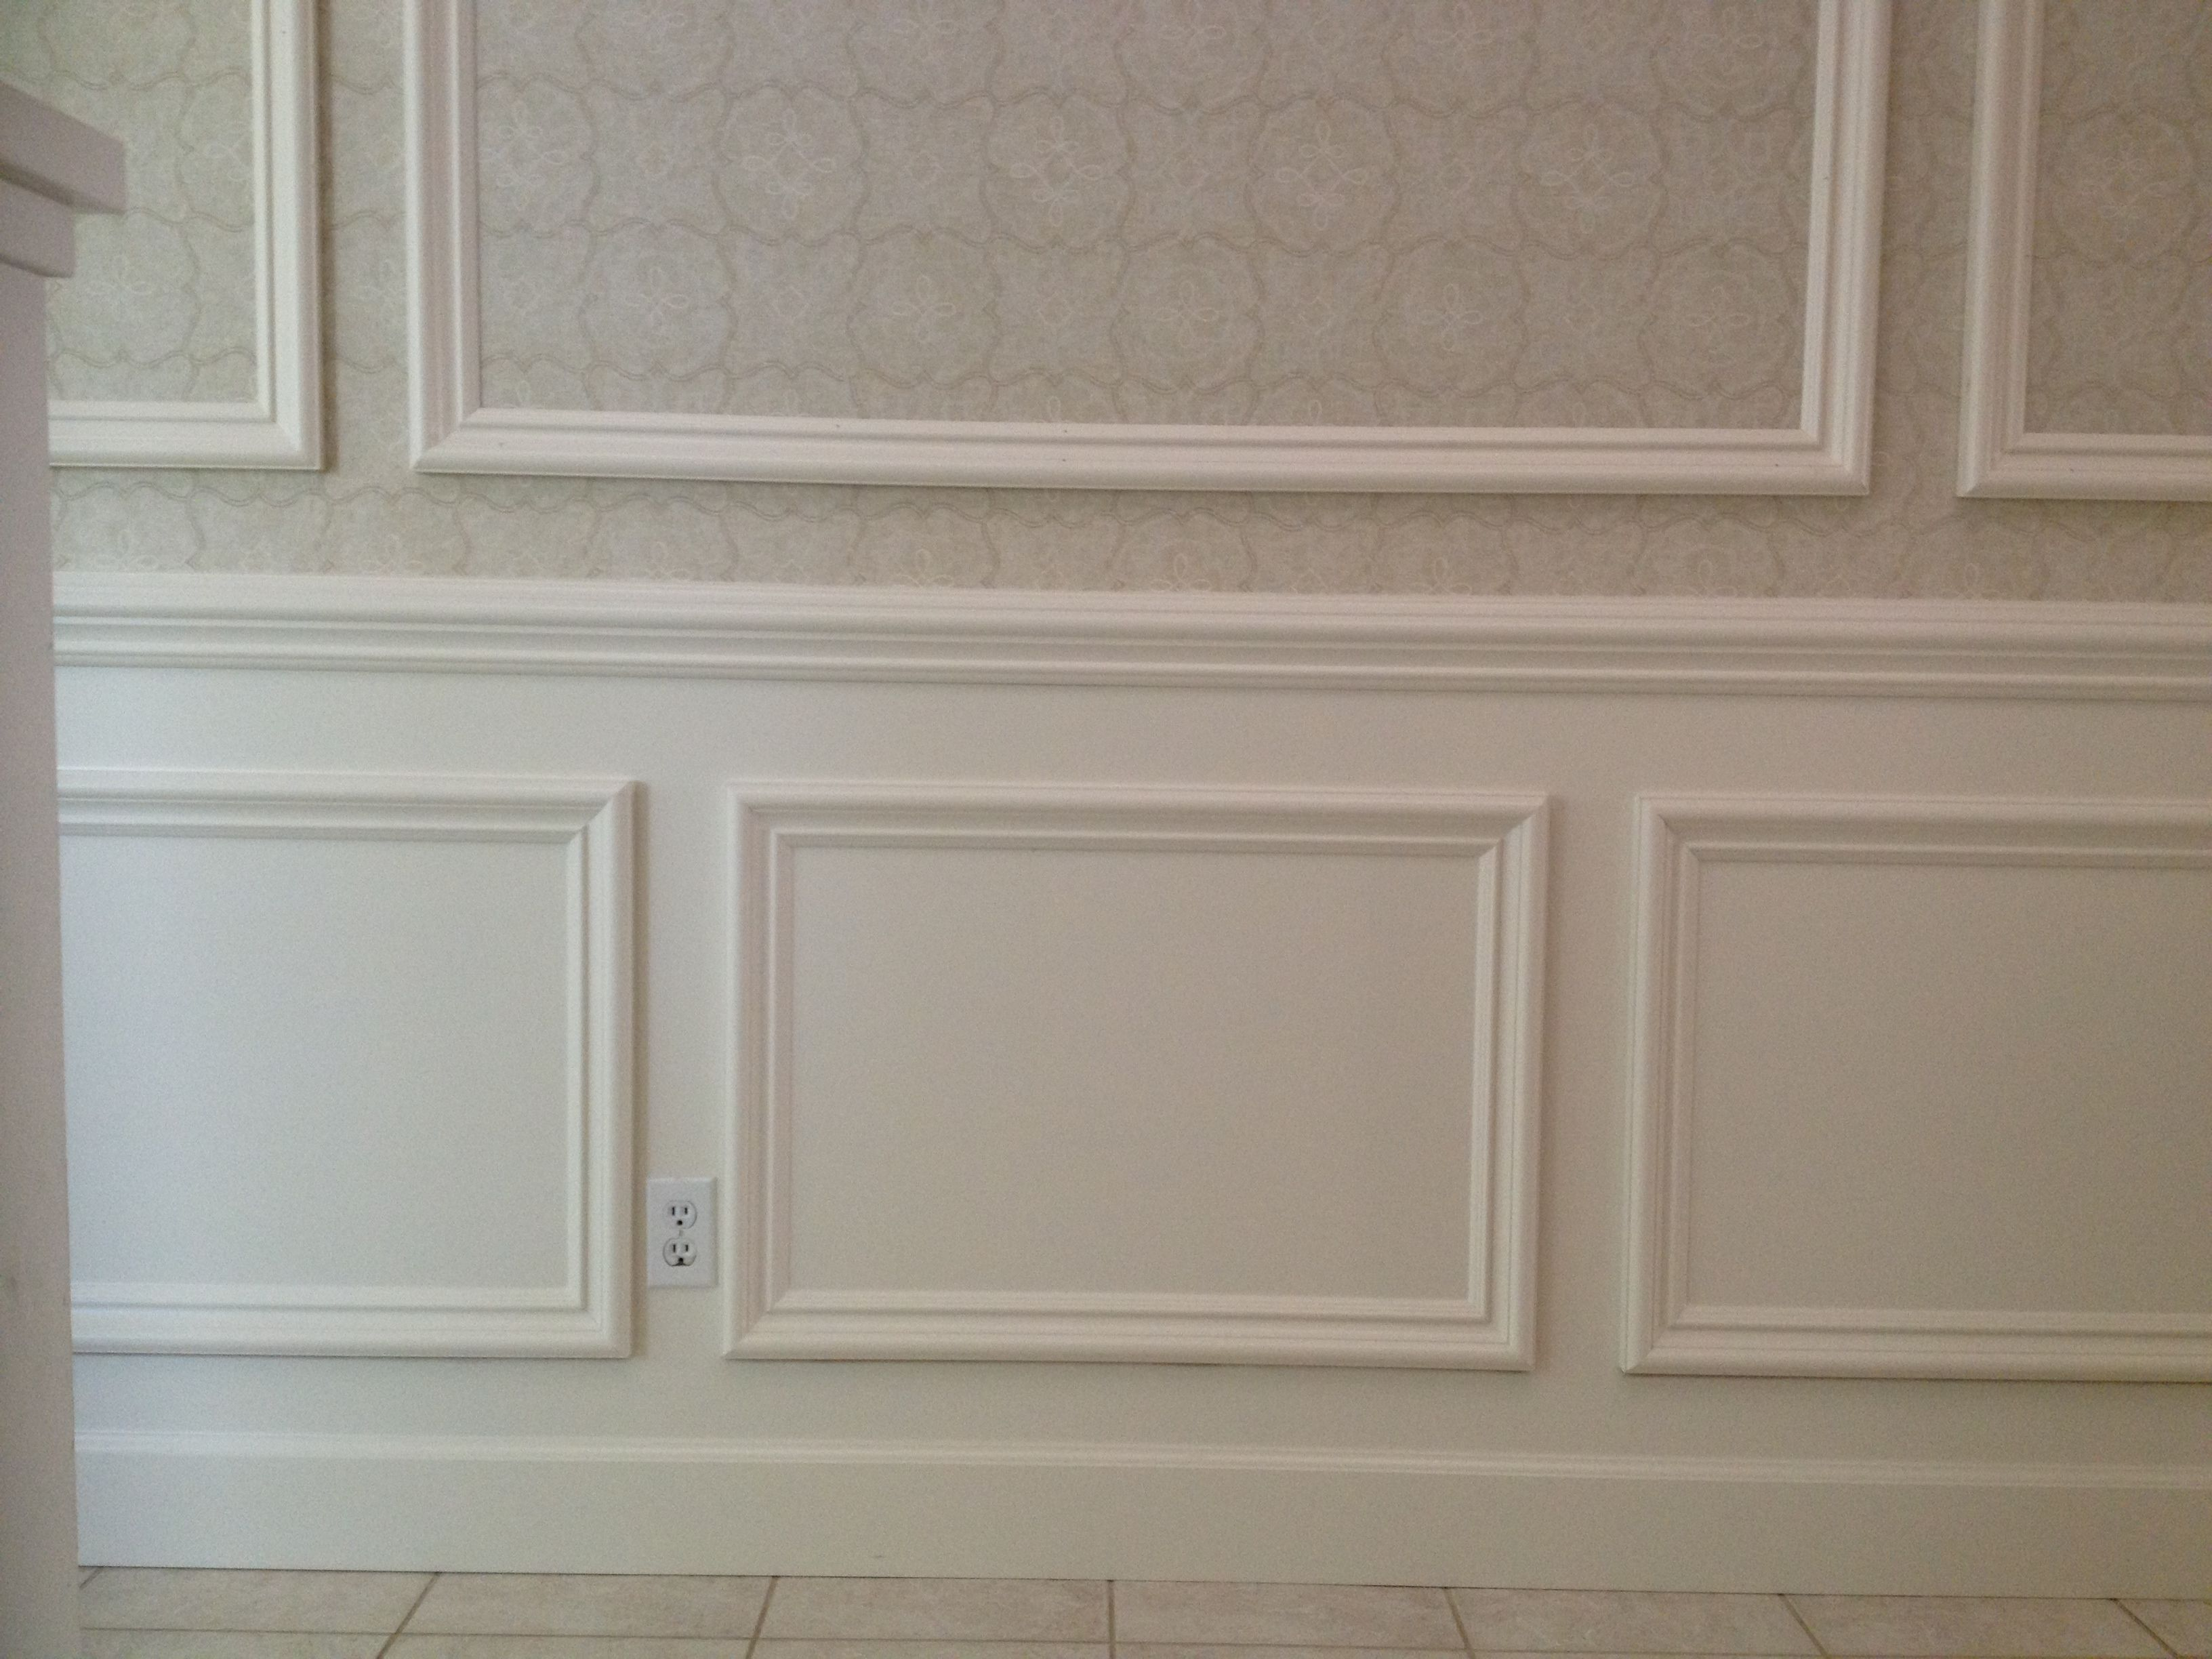 Wainscoting Design Ideas wainscoting designs Lovely Wainscoting Ideas For Lovable Home Interior Design Ideas Lovely Wainscoting Ideas In Soft Color Theme For Family Room